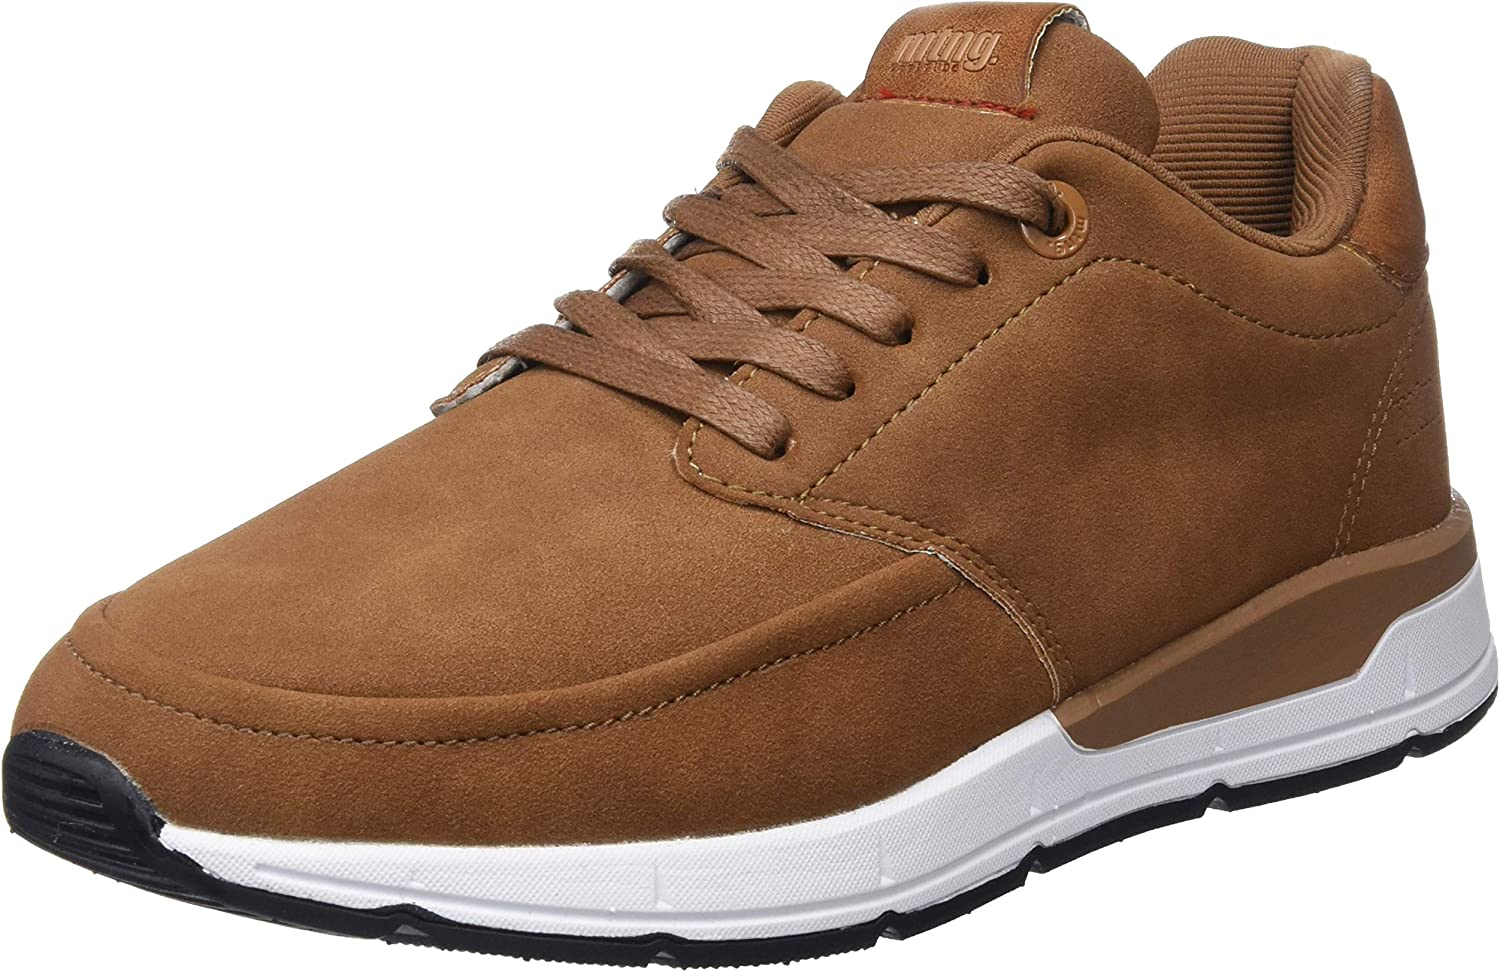 MTNG Men's 84193 Low-Top Sneakers